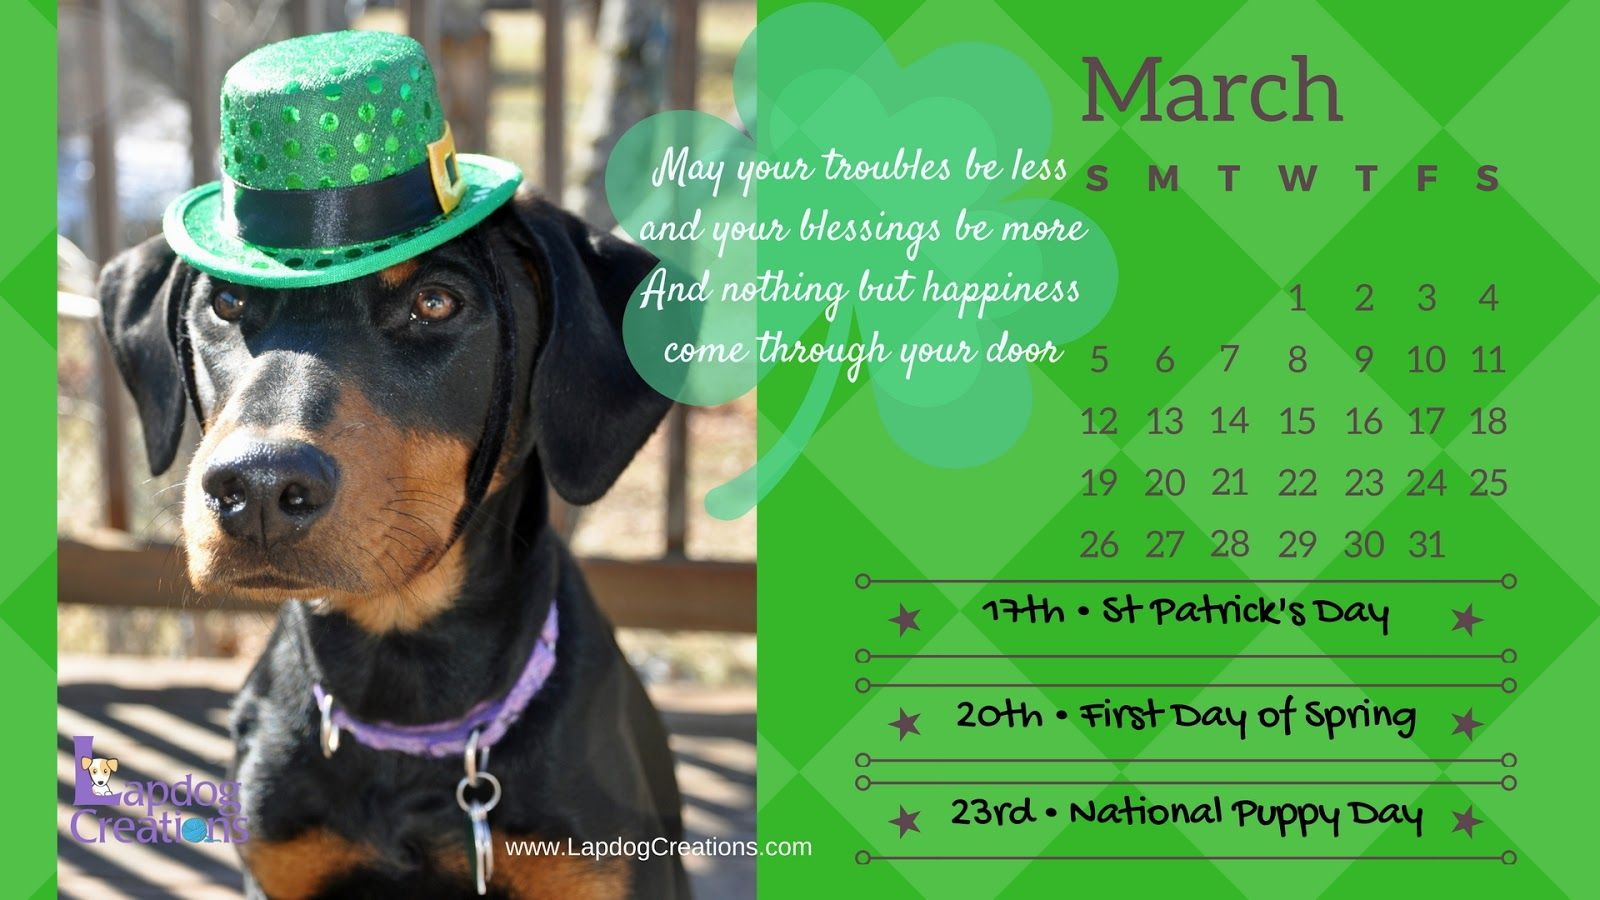 Happy March! Free Desktop or Printable Calendar from the Lapdogs ©LapdogCreations St Patricks Day | Dog Mom | Rescue Dog | Dog Products | Calendar | Doberman | Life with Dogs